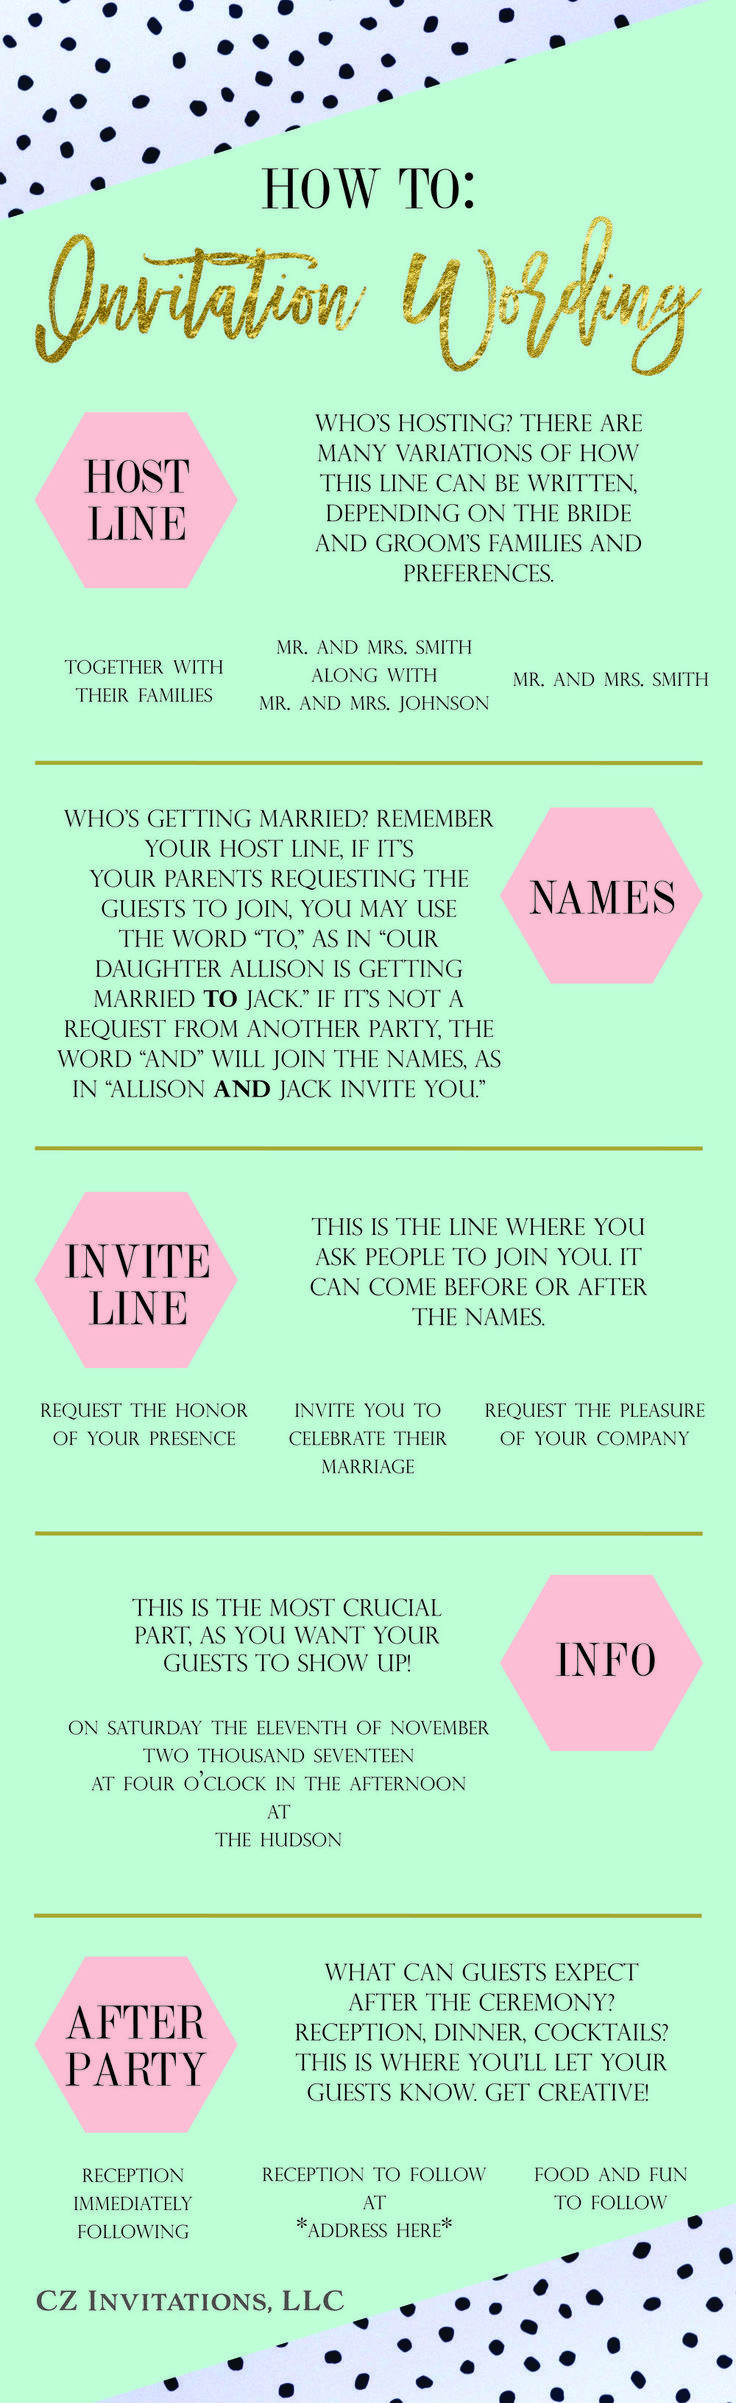 Wedding invitation wording. A guide with wording tips and inspiration!